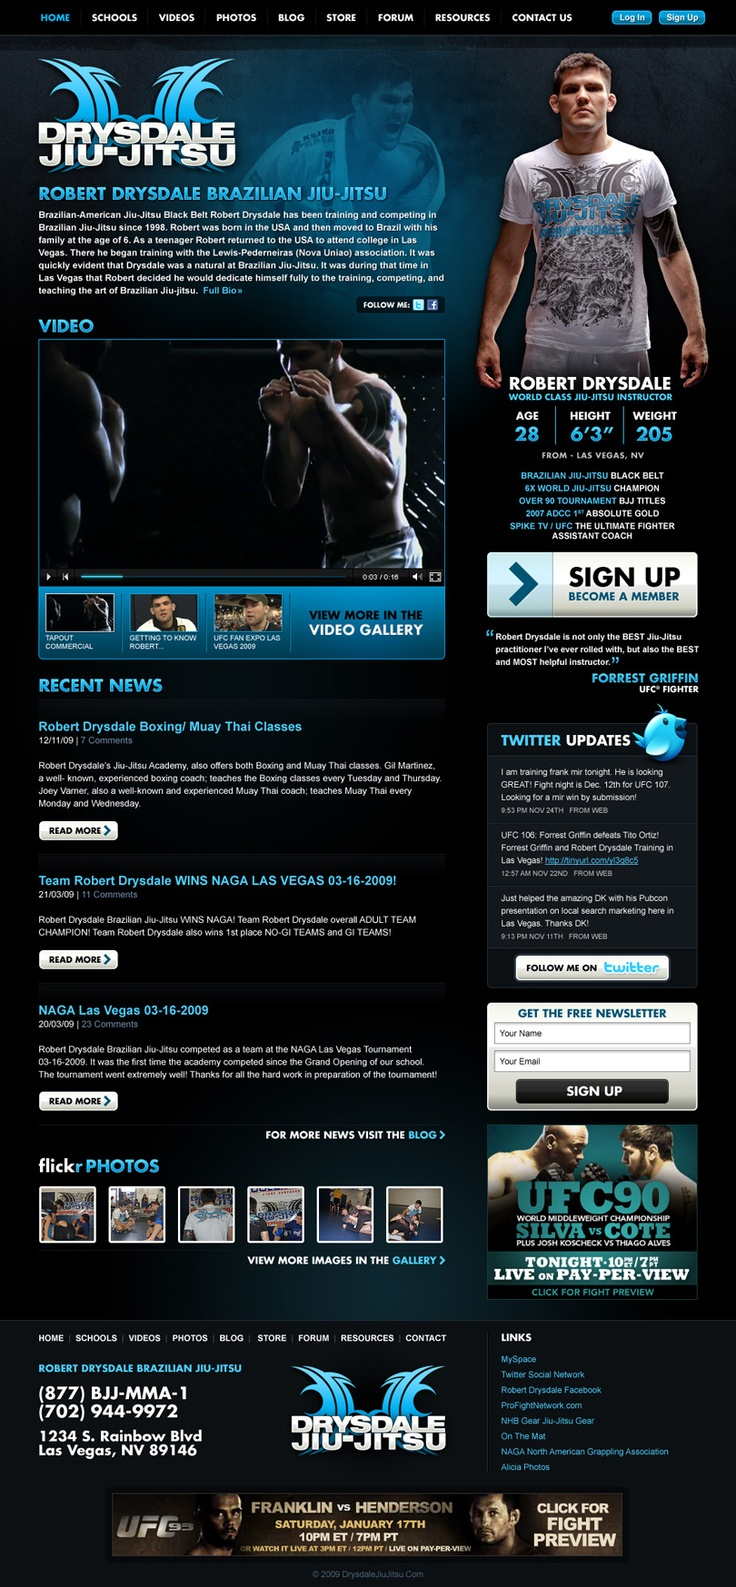 Drysdale Jiu-Jitsu • Robert Drysdale is an accomplished Brazilian Jiu-Jitsu Black Belt World Champion and was an Assistant Coach on Season 8 of Spike TV's UFC The Ultimate Fighter. I handled the art direction and design for Robert's official website that provided viewers with the latest news along with the opportunity to watch online training videos.    This design for Drysdale Jiu-Jitsu was featured on a number of css gallery sites.